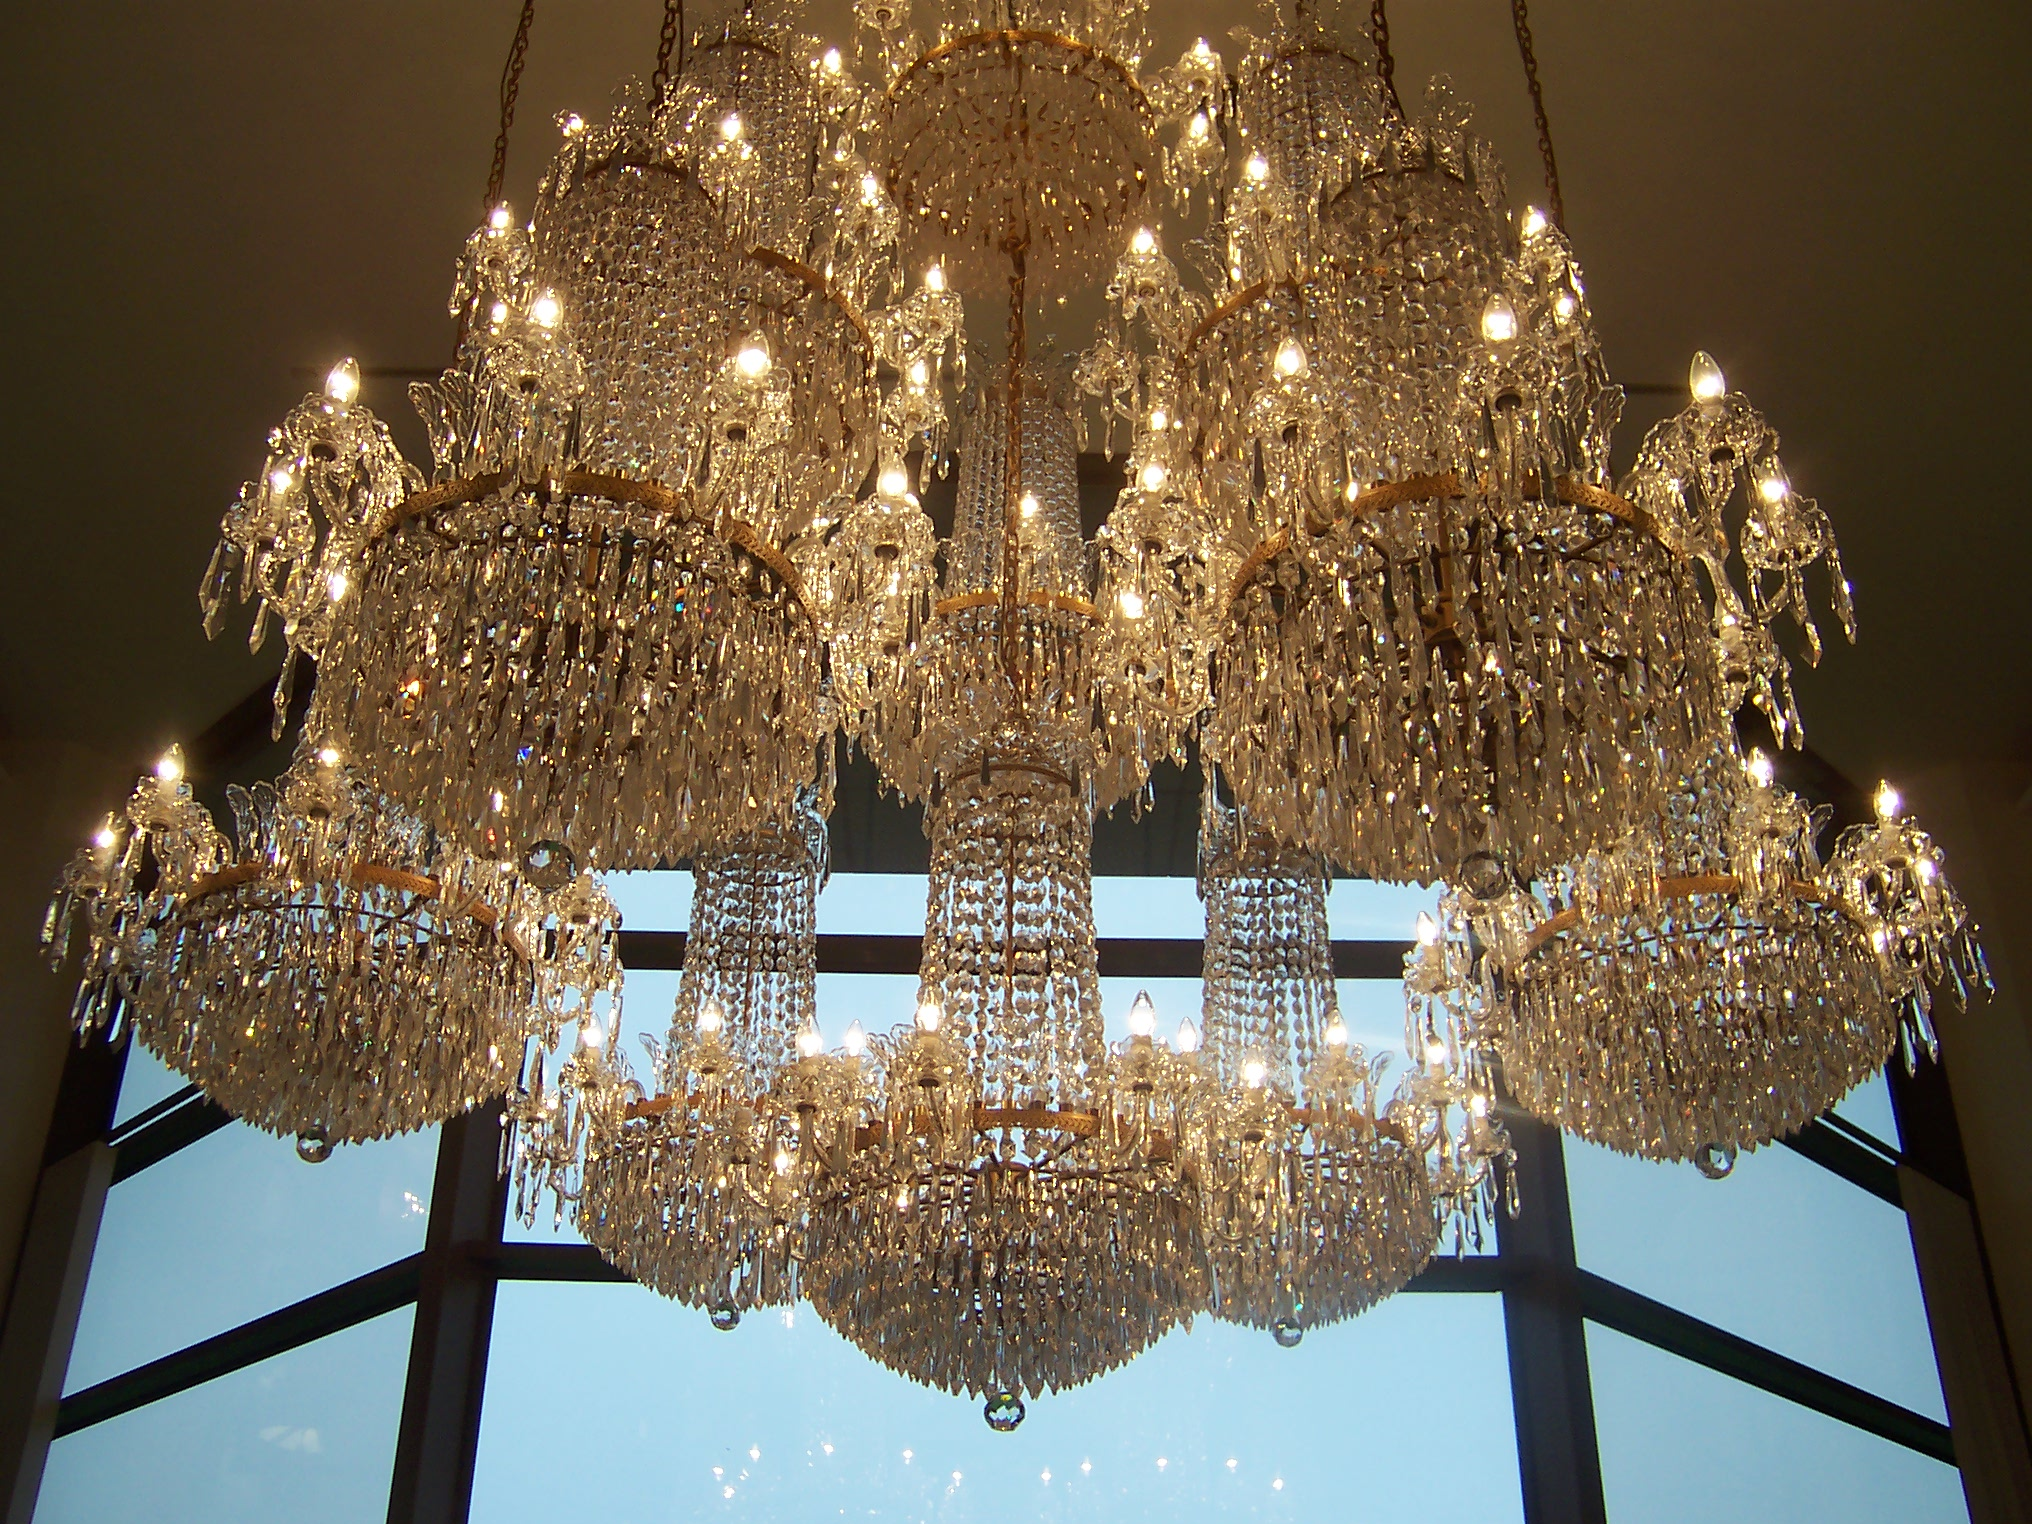 Scintillating chandelier light wiki ideas simple design home file waterfordchandelier jpg wikimedia commons arubaitofo Choice Image